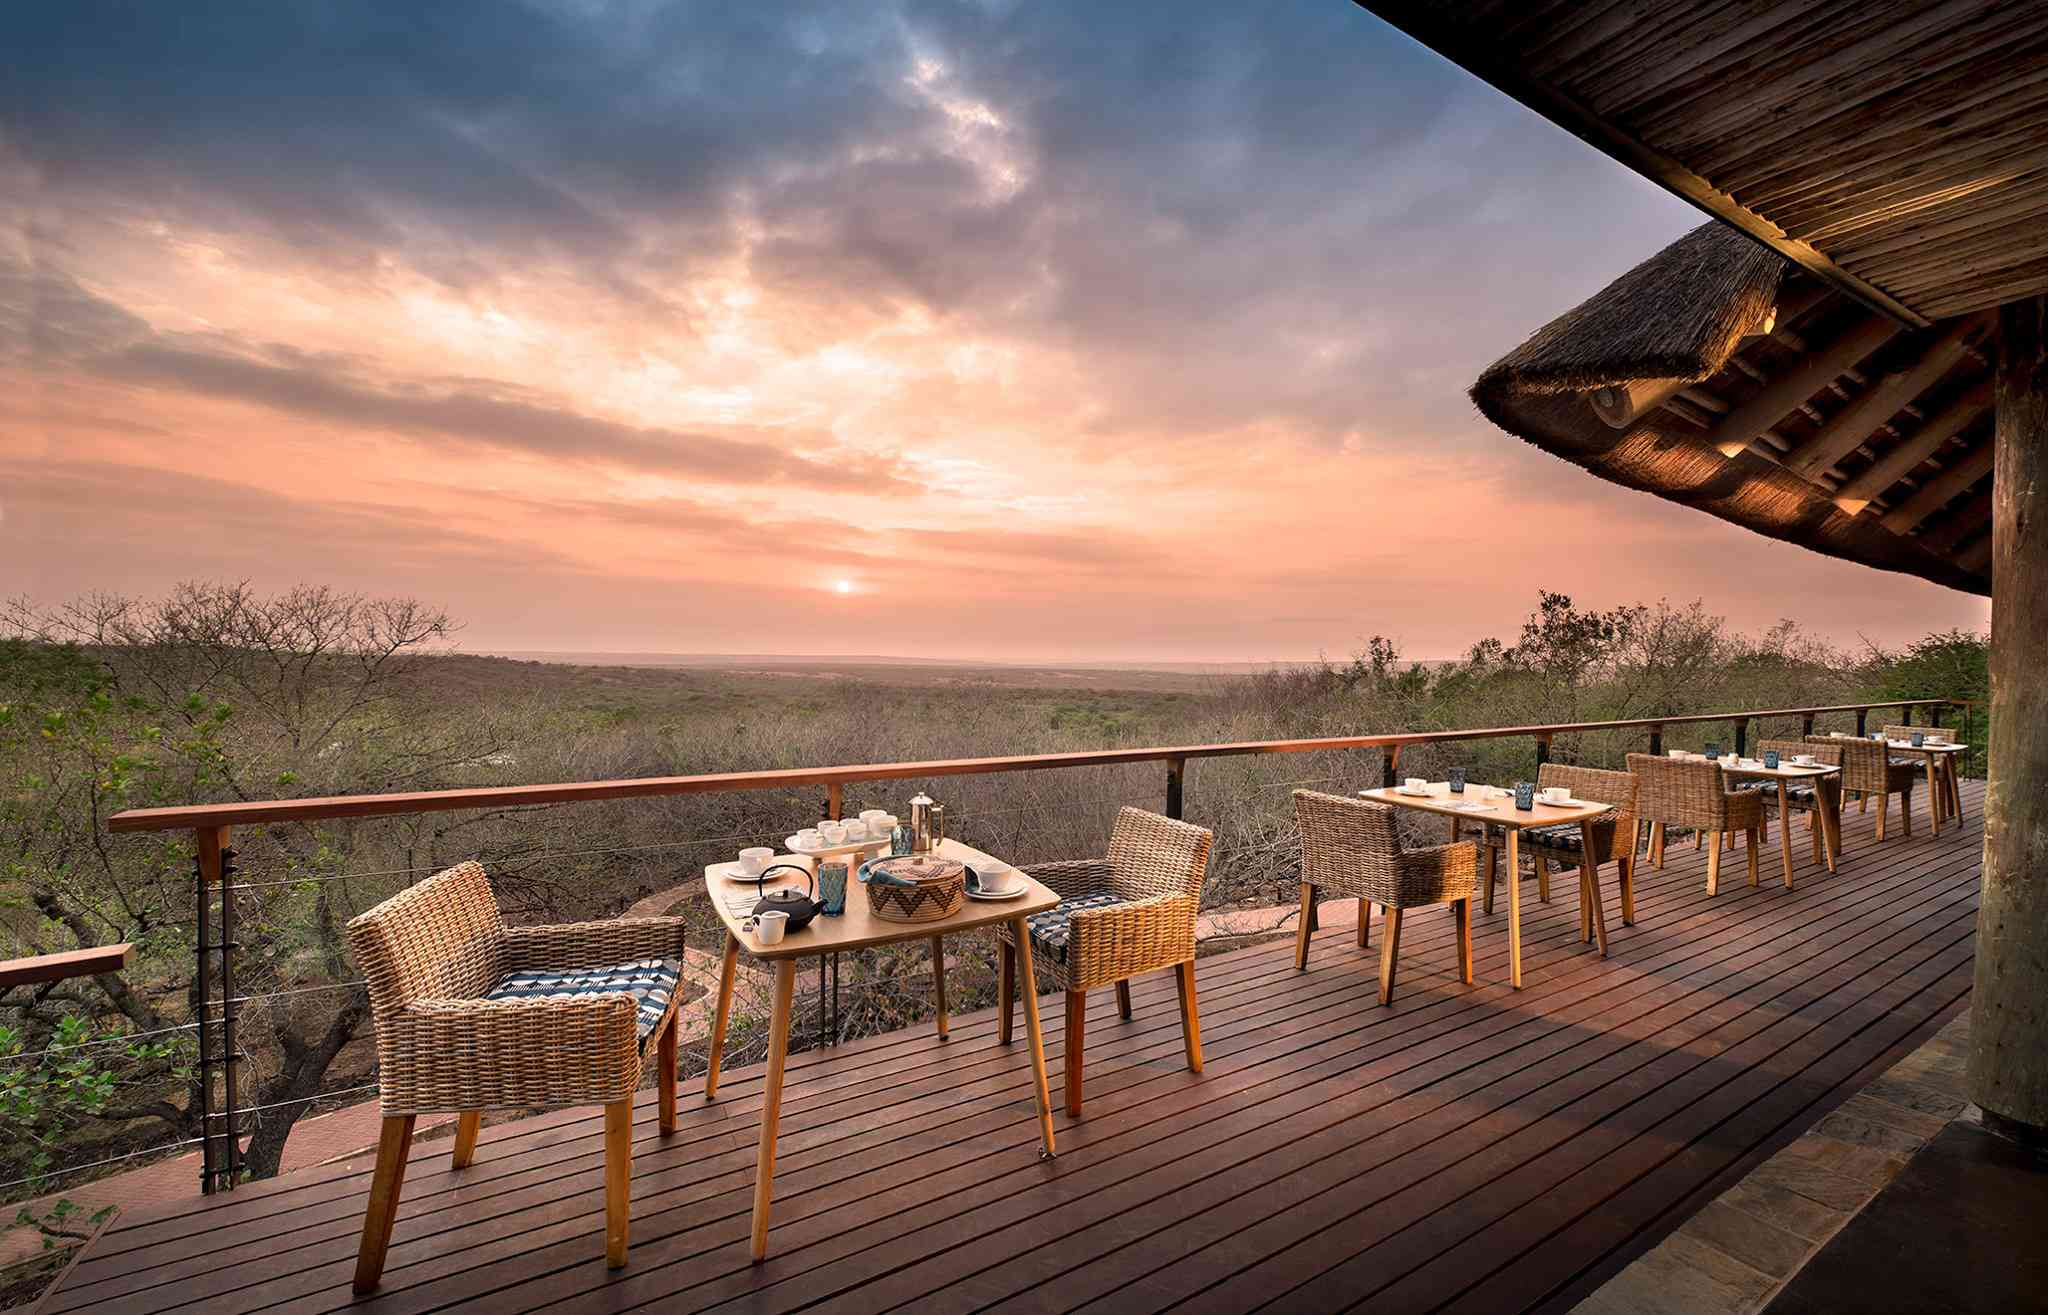 ding tables on a deck over looking Phinda Private Game Reserve at sunset